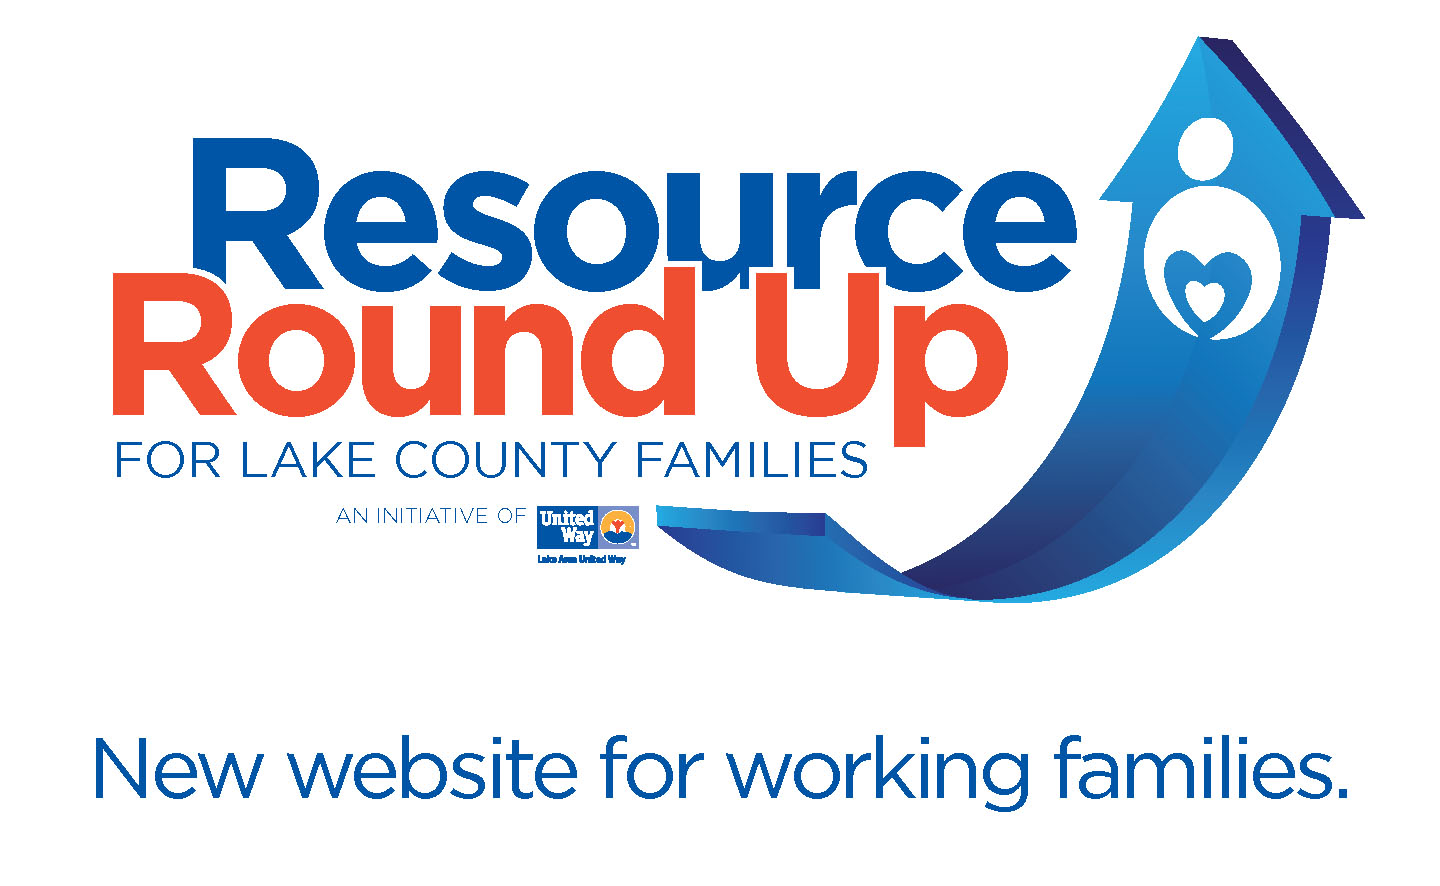 Lake Area United Way Introduces New Website For Working Families in Lake County